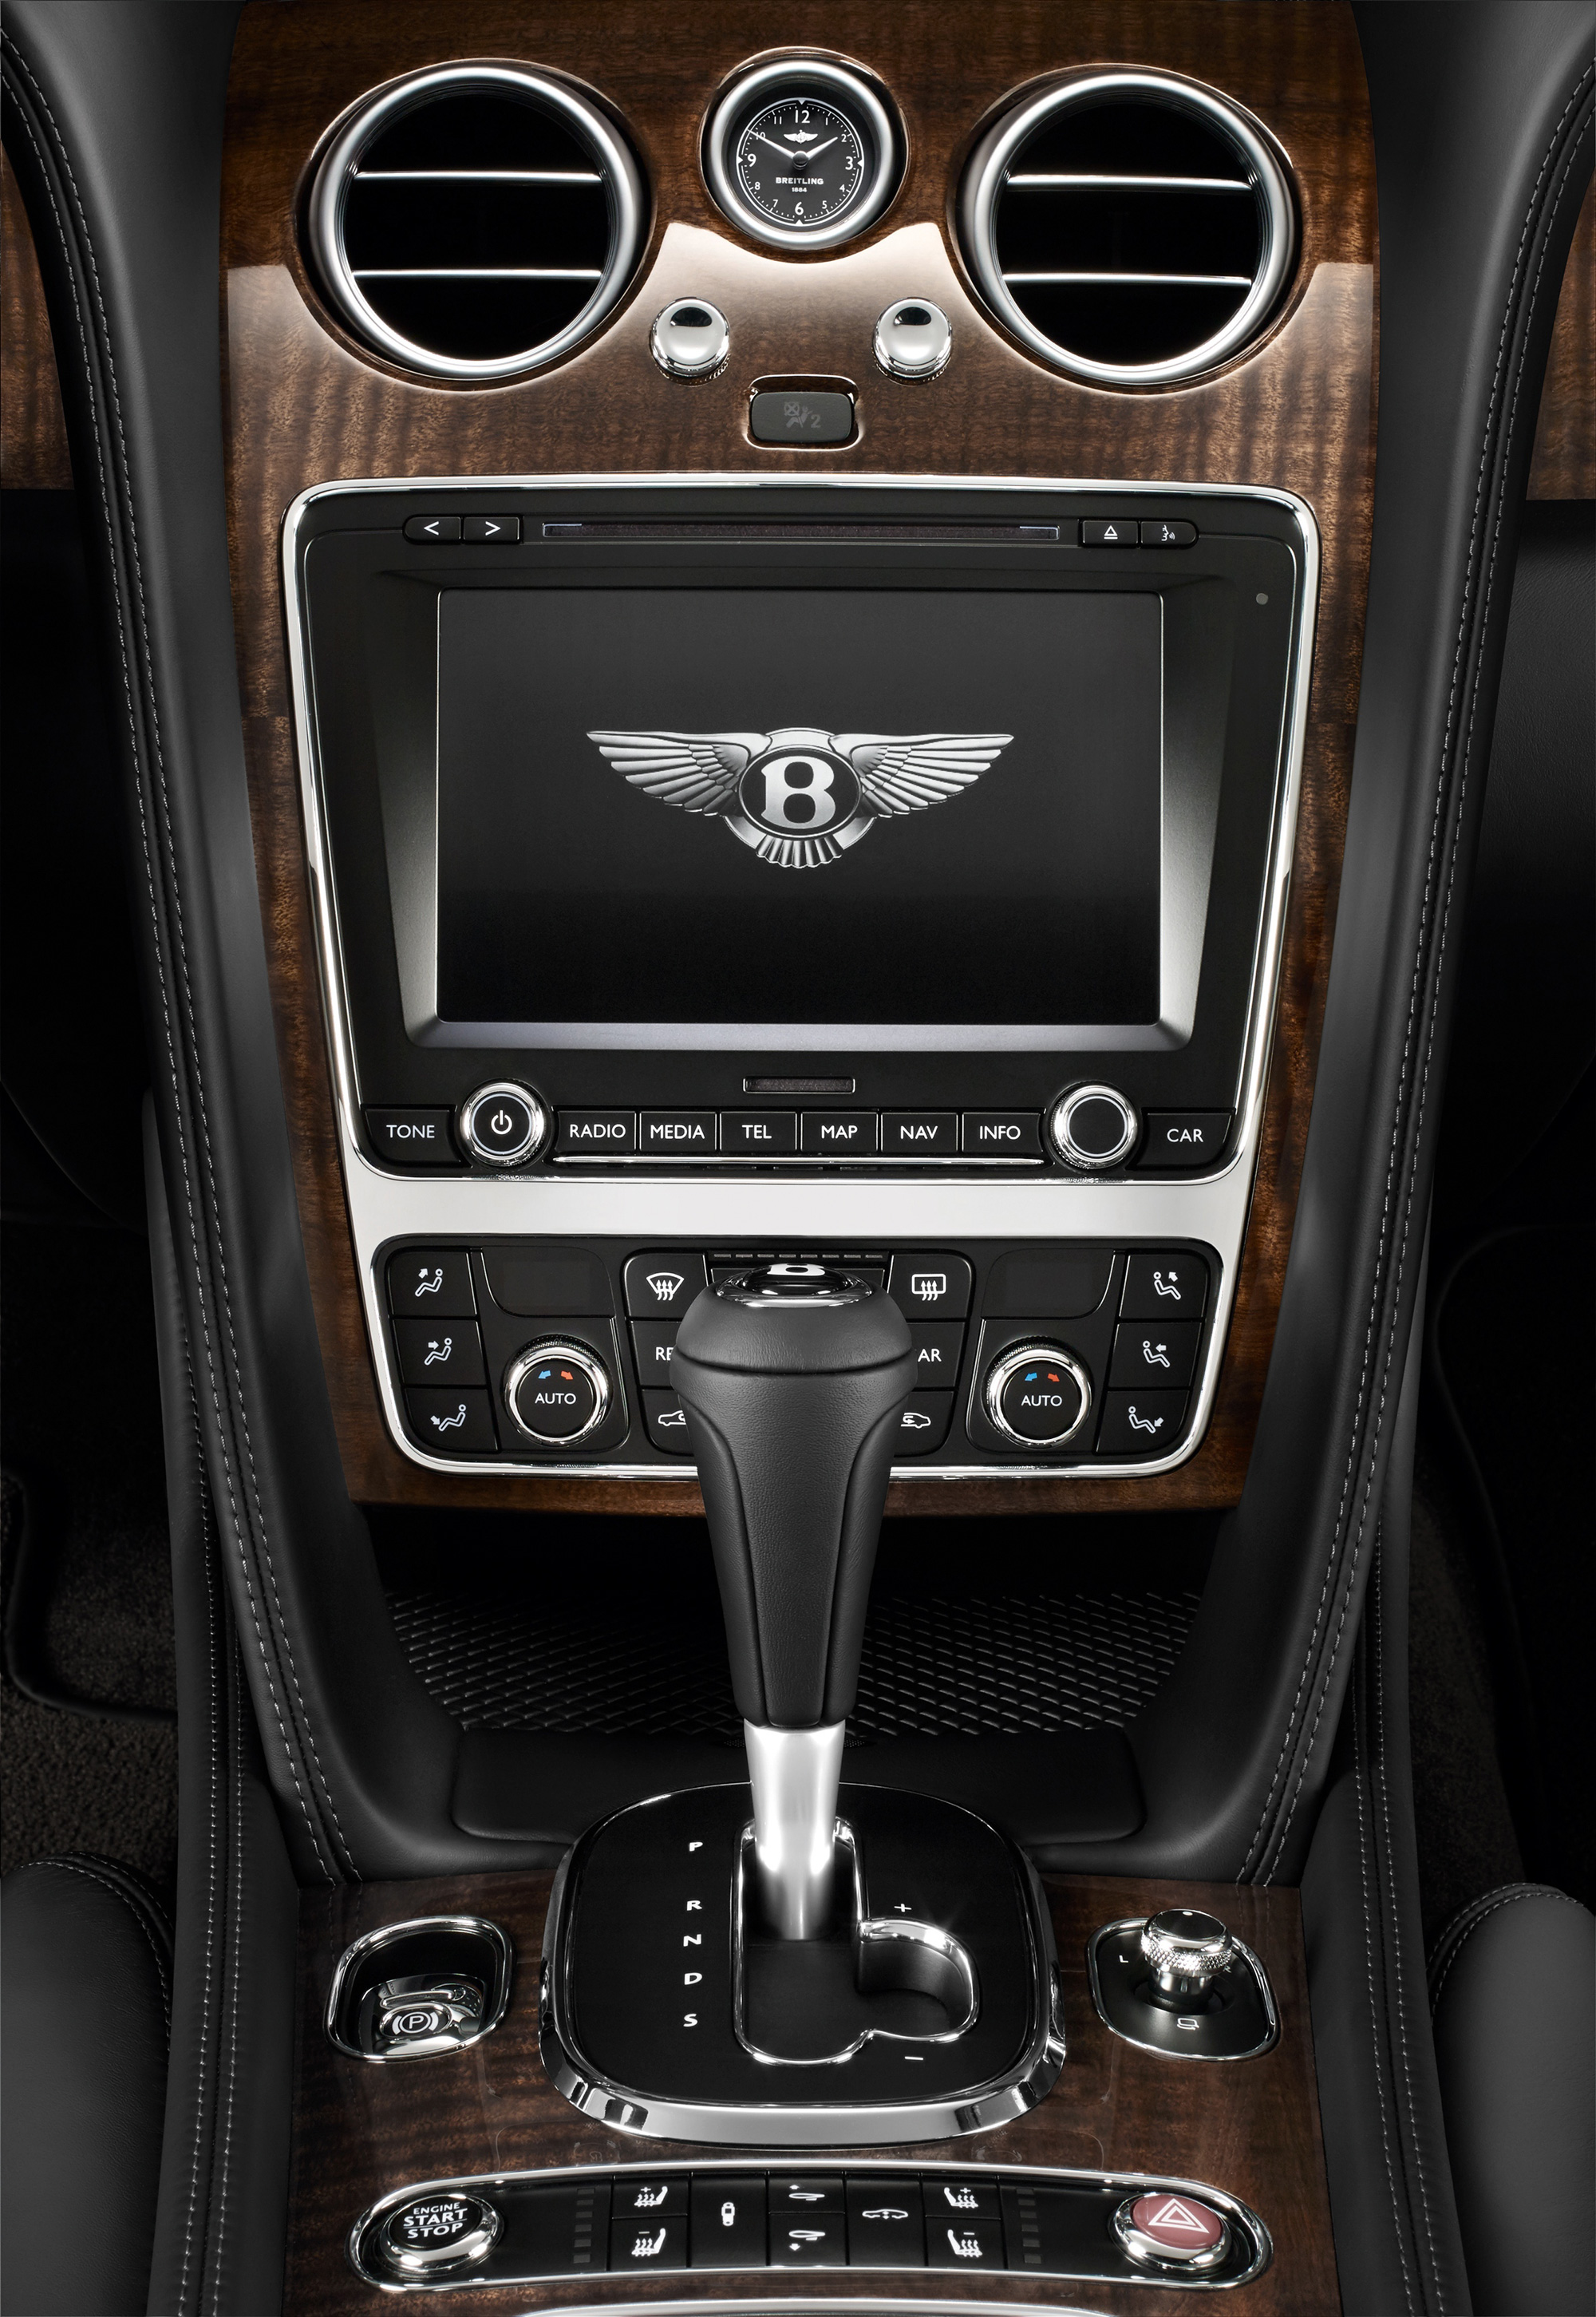 continental convertible bentley specs how wallpaper information much does gtc cost pictures a